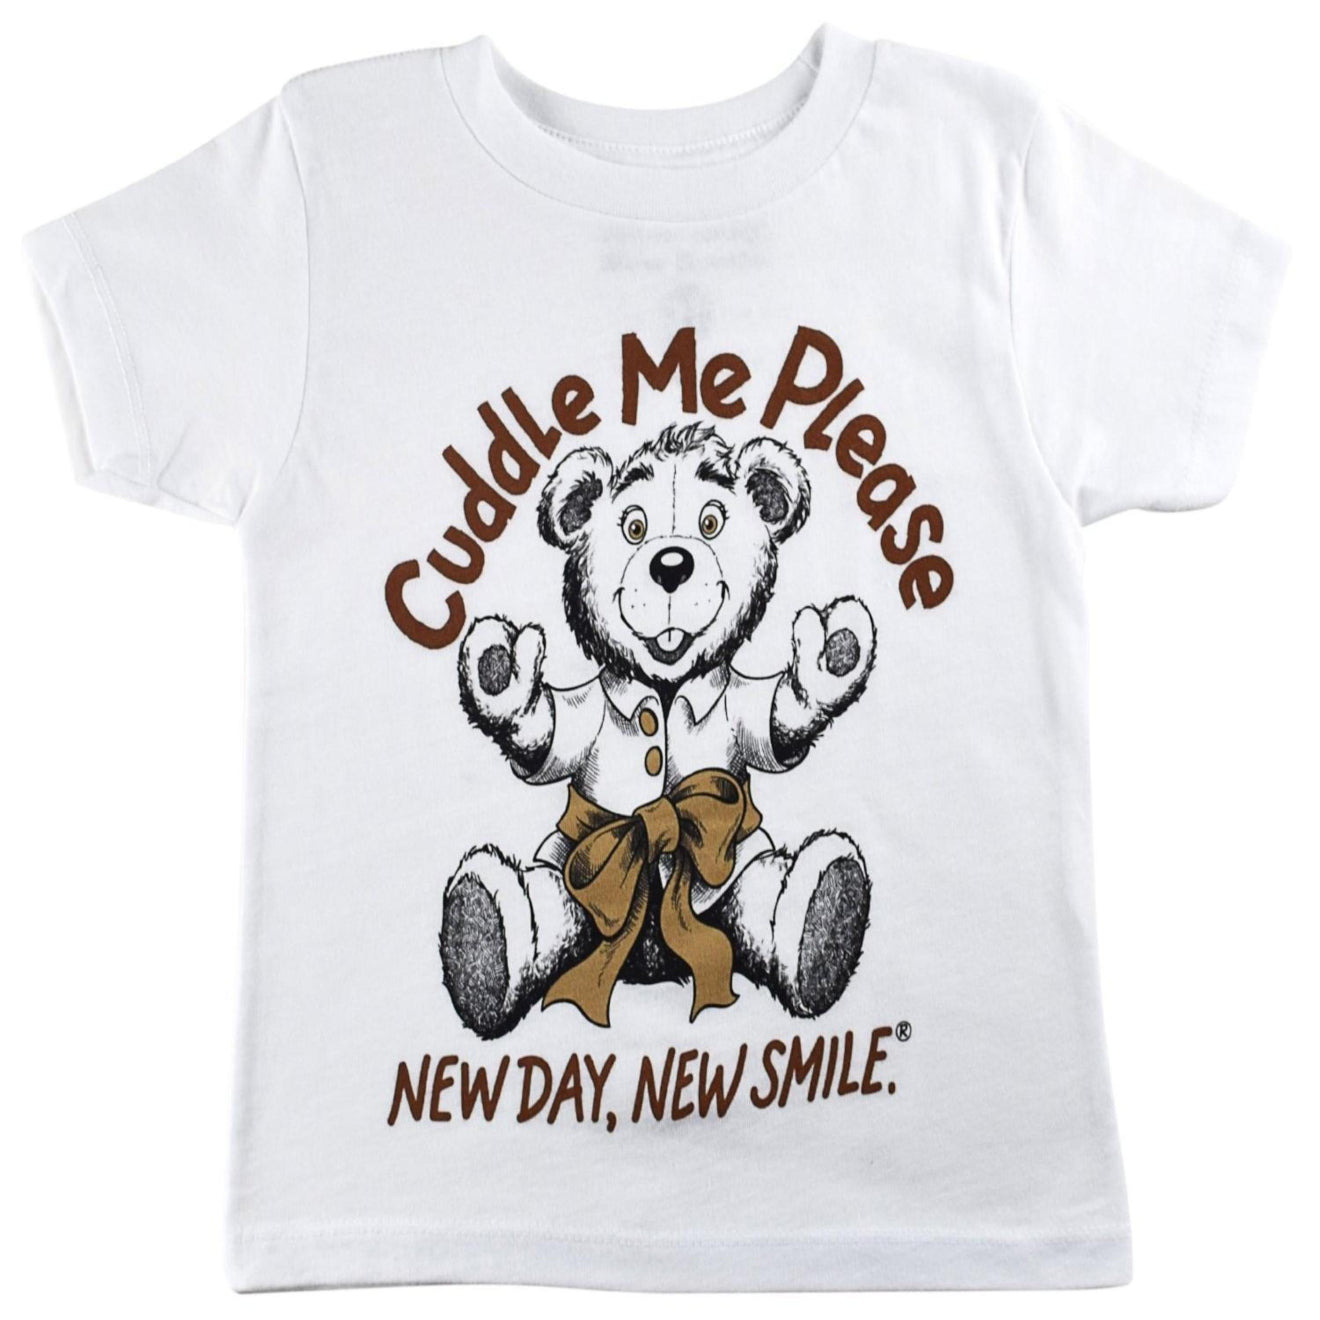 033ea59a54c3 Kids Adorable Teddy Bear Tee | New Day, New Smile.® Collection – NEW ...